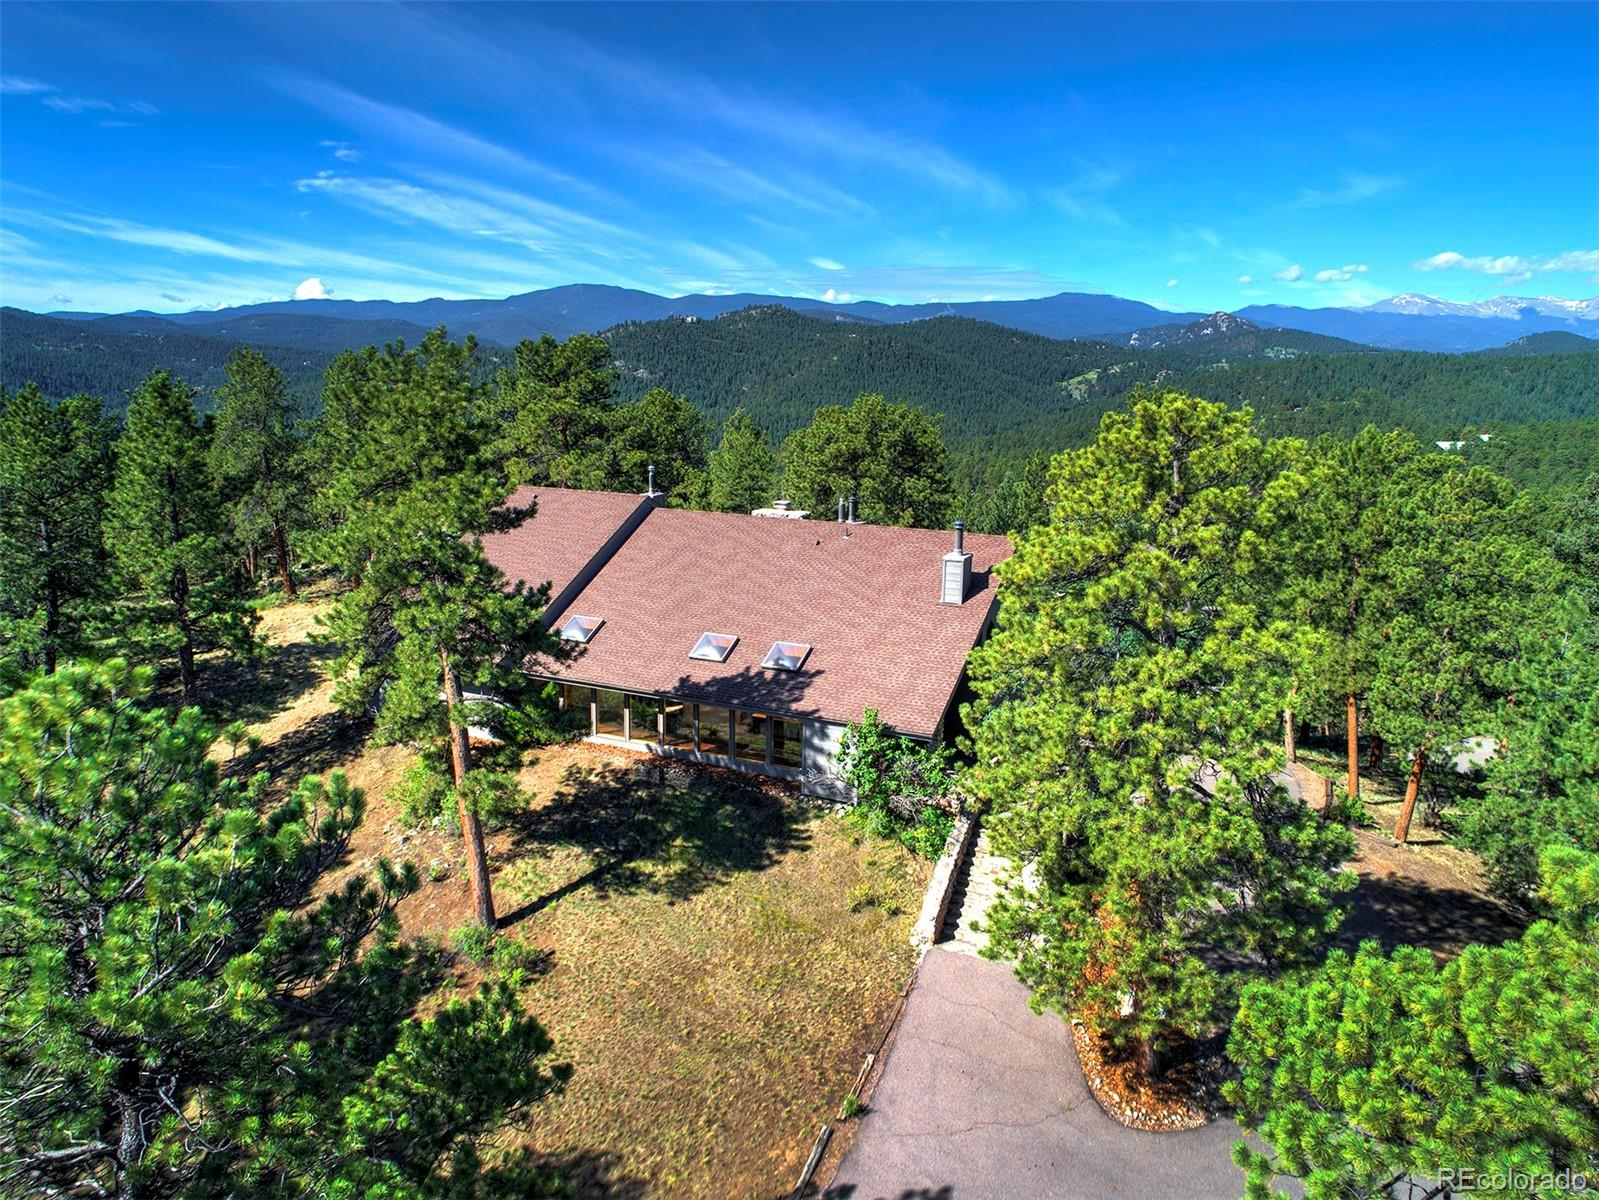 This classic mountain home is perched at the top of twelve gorgeous acres with spectacular Mt. Evans views. Property like this is hard to find anymore…conveniently located, easy access, serene, quiet and very private. This will be your lovely mountain retreat with quintessential mountain living in every room.  The center of the home is the expansive living room which boasts a floor-to-ceiling free-standing river rock fireplace flanked by towering windows and a 20' vaulted ceiling.  The remodeled kitchen features custom alder wood cabinetry with beveled glass, stunning granite counters, Subzero refrigerator, & beamed ceilings.  Enjoy your morning coffee and snuggle up with a good book on the numerous window seats around the house.  The mountain living experience is not limited to the inside of this wonderfully unique home, it will be easy to entertain on the expansive deck and enjoy watching the wildlife or the sunset over the snow-capped mountains. The hand-carved double doors off the living room lead you to the spacious master suite. Wake up to the fireplace flickering at your feet or step onto the deck. The large master bath is amazing with two walk-in closets, a jacuzzi tub, and a steam shower. Visitors will love sitting in the amazing library by the warmth of the antique wood stove. The home has a few more surprises with two staircases on each side of the house. One takes you to two charming bedrooms with a bathroom between. The other leads you to the perfect place to set up your home office or another bedroom with fireplace & en-suite bathroom. Closets & storage abound throughout. The Quartz Mountain neighborhood is a hidden gem, as is this home and property. It's rare to find this kind of secluded, quiet home & acreage so close to Evergreen with Mt. Evans views, easy access, paved roads & convenient location. Hiking & cycling just min away, 9 min. to Evergreen amenities, arts, music, festivals, fine dining & more.This is a true sanctuary & ideal CO lifestyle!